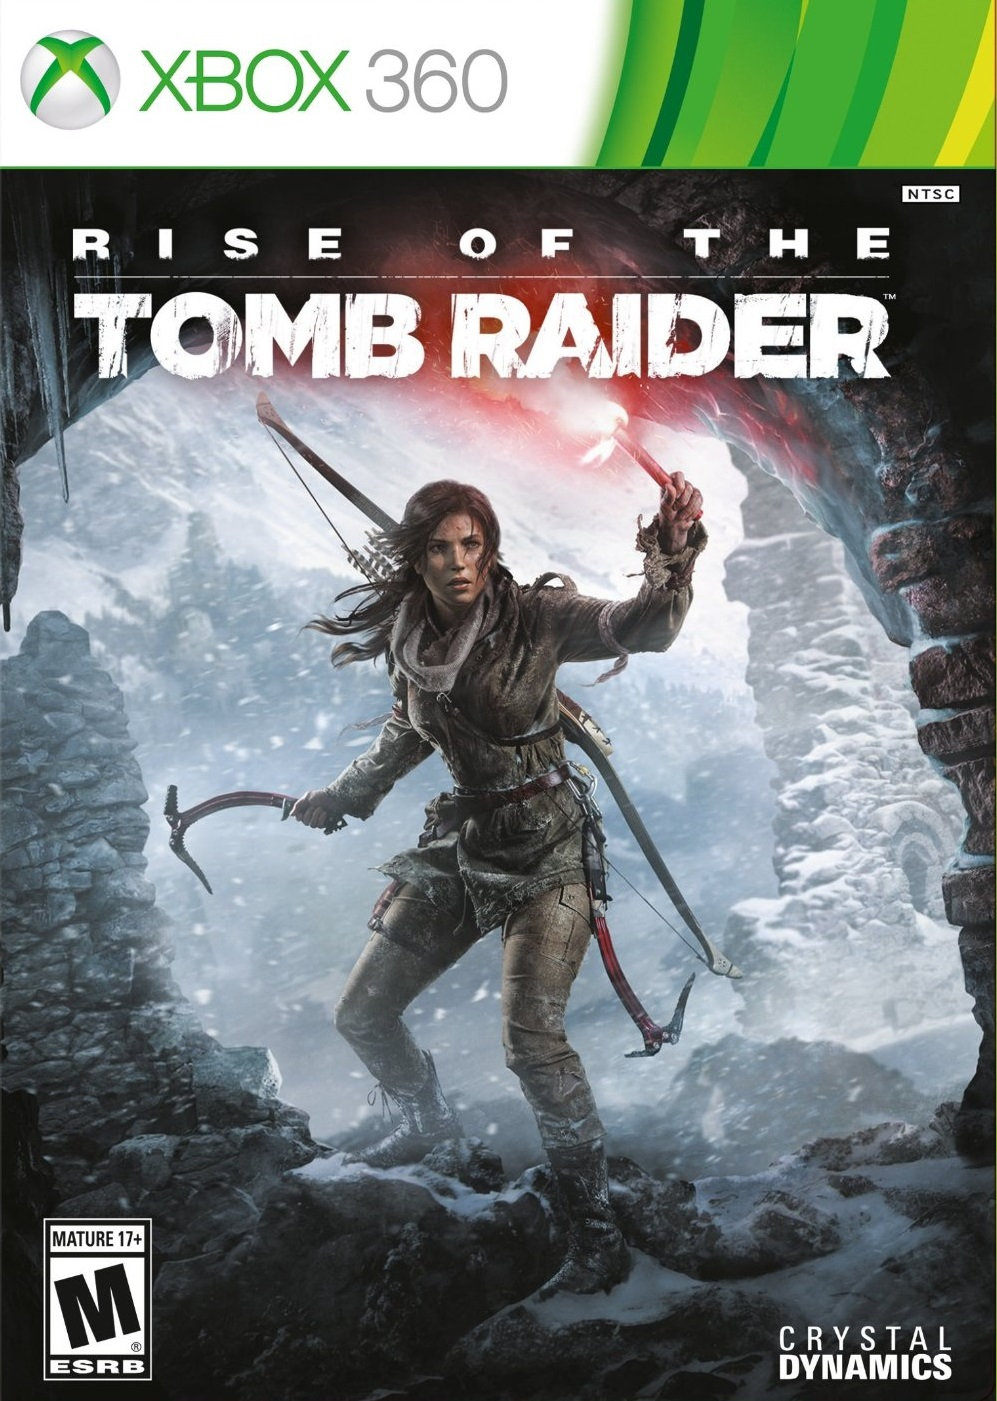 Rise Of The Tomb Raider ESPAÑOL XBOX 360 Cover Caratula